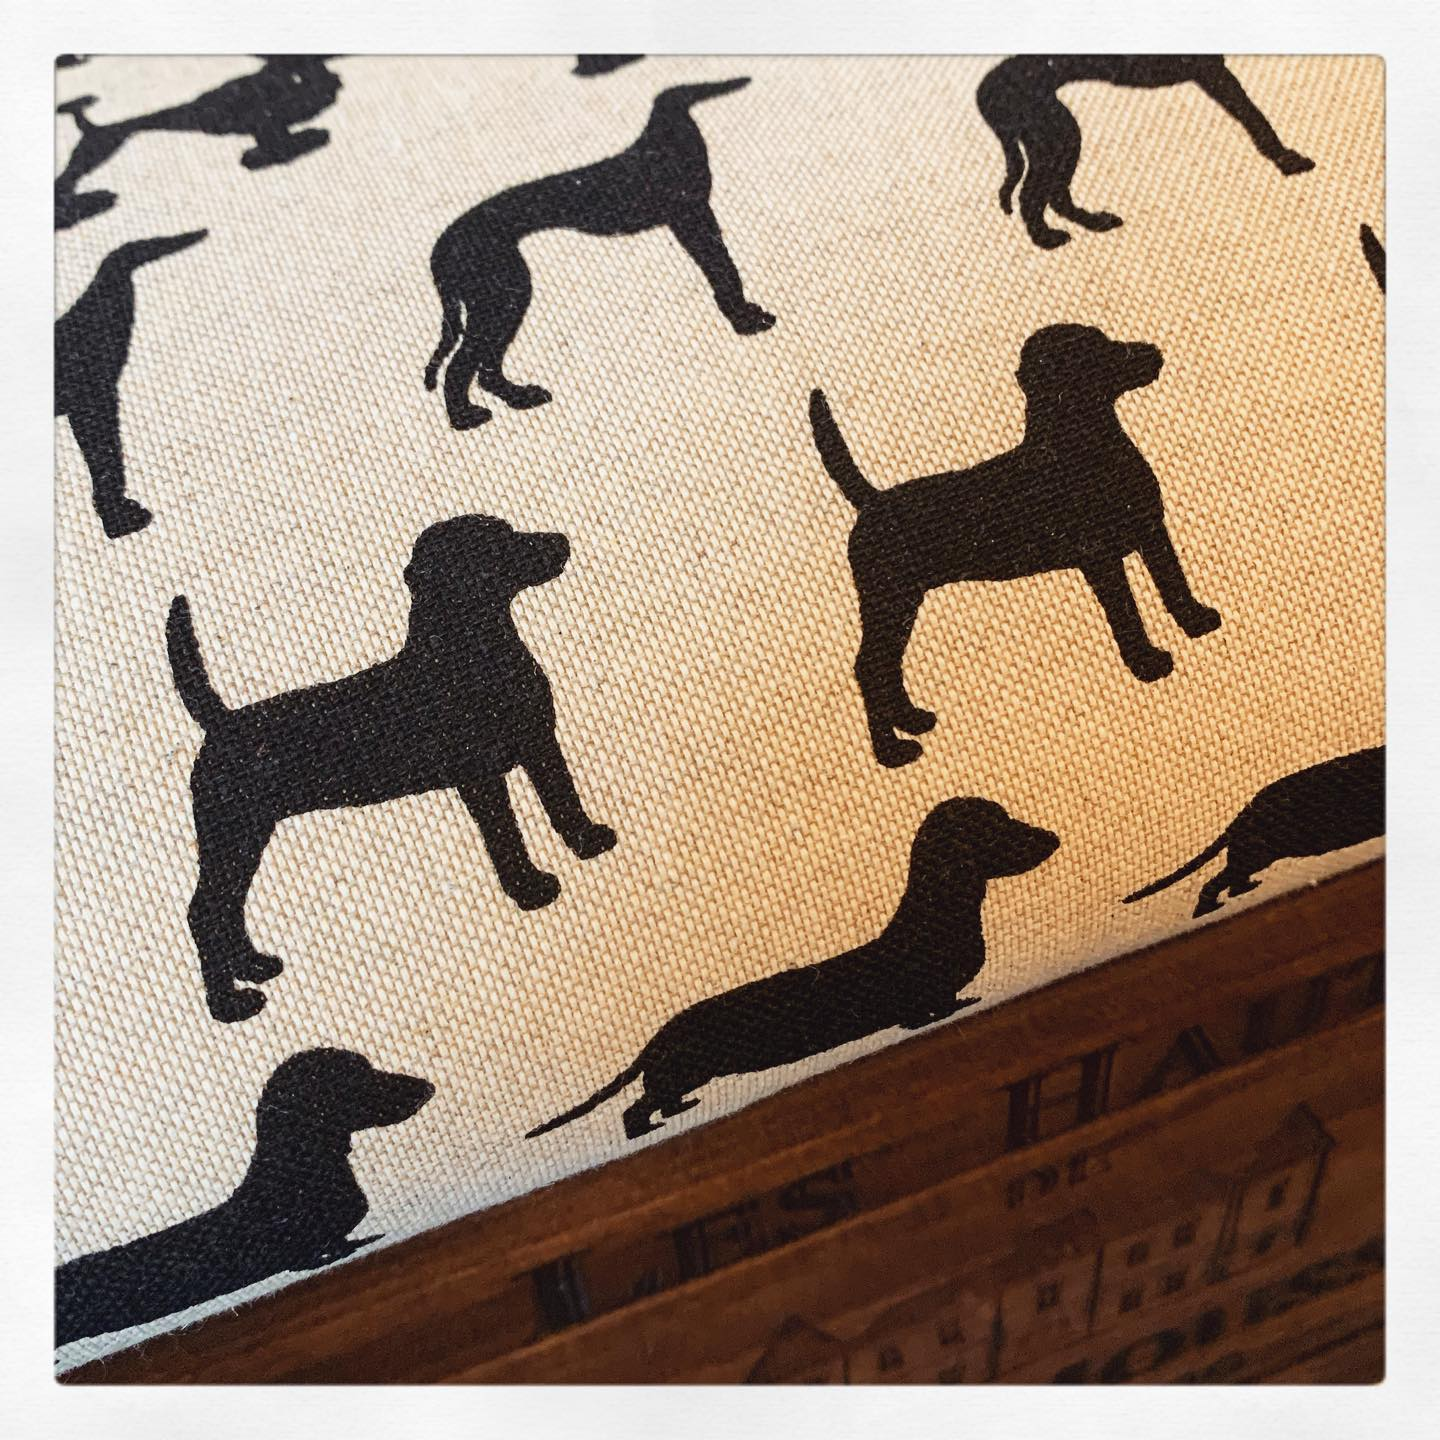 Making some new stock for @wadswick Country Store today. Super excited to use this fabric again!...#equestrian #countrystore #home #closetohome #local #handmade #dogs #pattern #footstool #beautifulprint